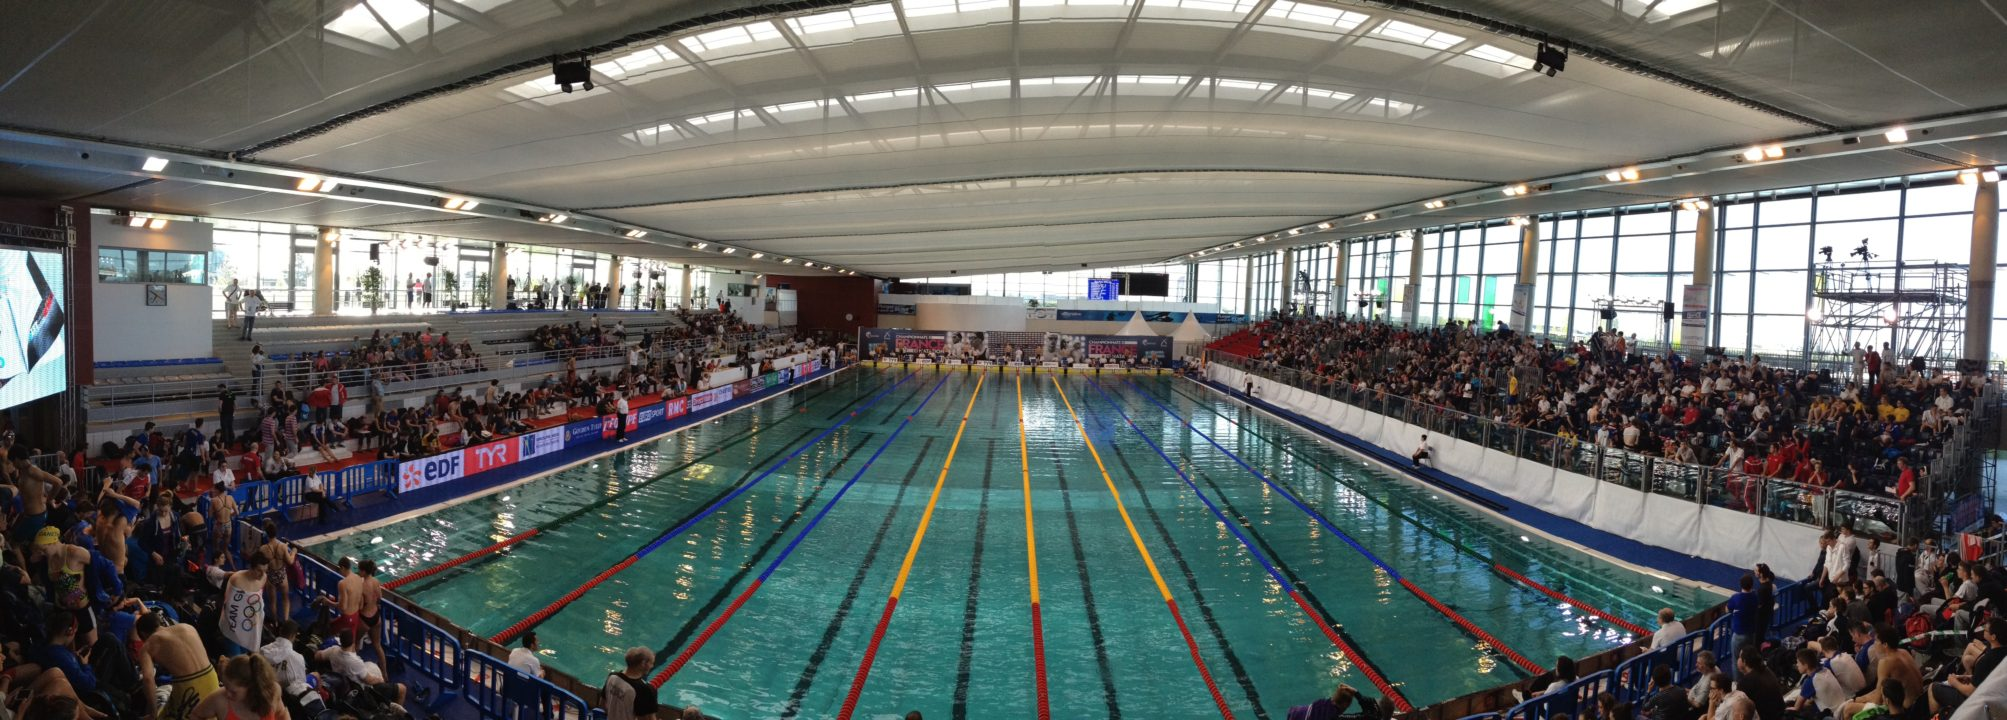 First-Time Champions, Plus Manaudou, Muffat, Highlight Last Day of French Championships in Chartres